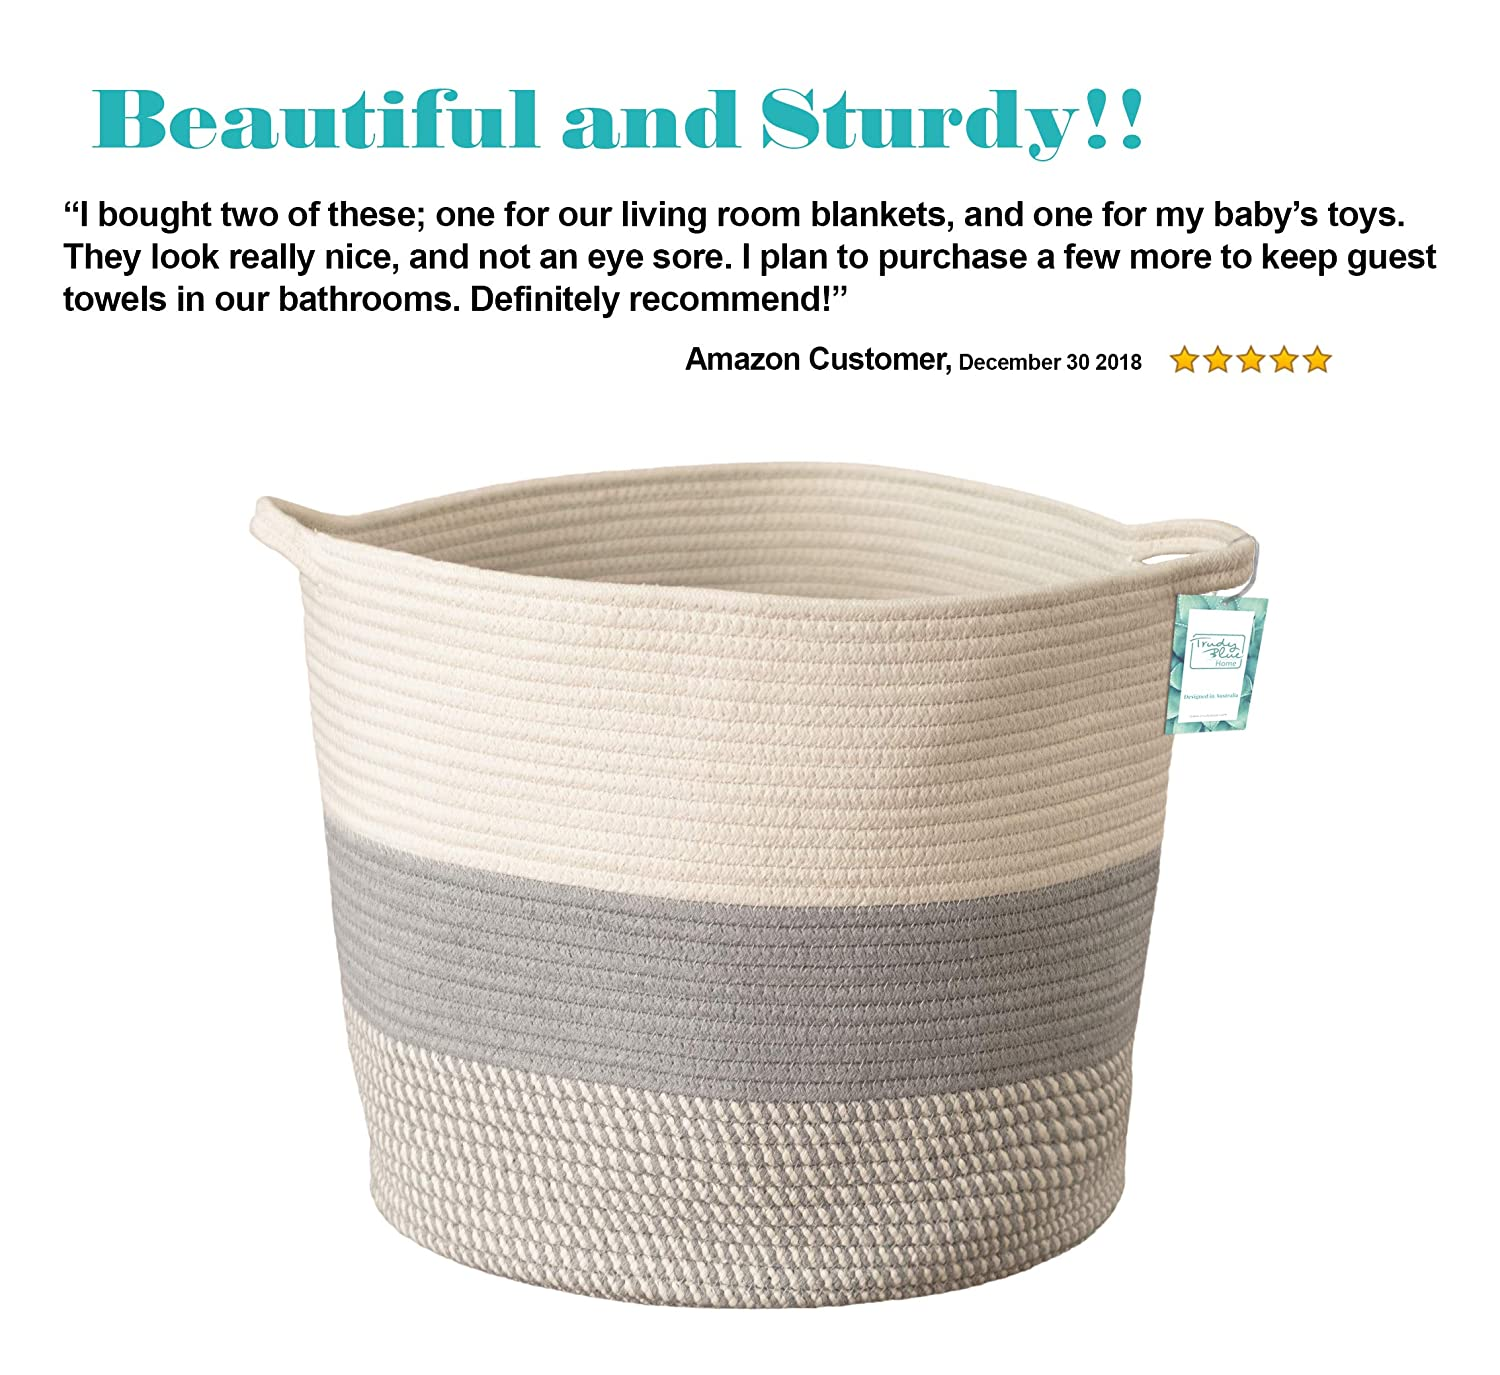 19604dae4821 Amazon.com : Extra Large Cotton Rope Woven Storage Basket XL Tall Grey  Décor Basket for Blanket, Baby Nursery Hamper Bin, Toy Tote - A Cute Round  Laundry, ...